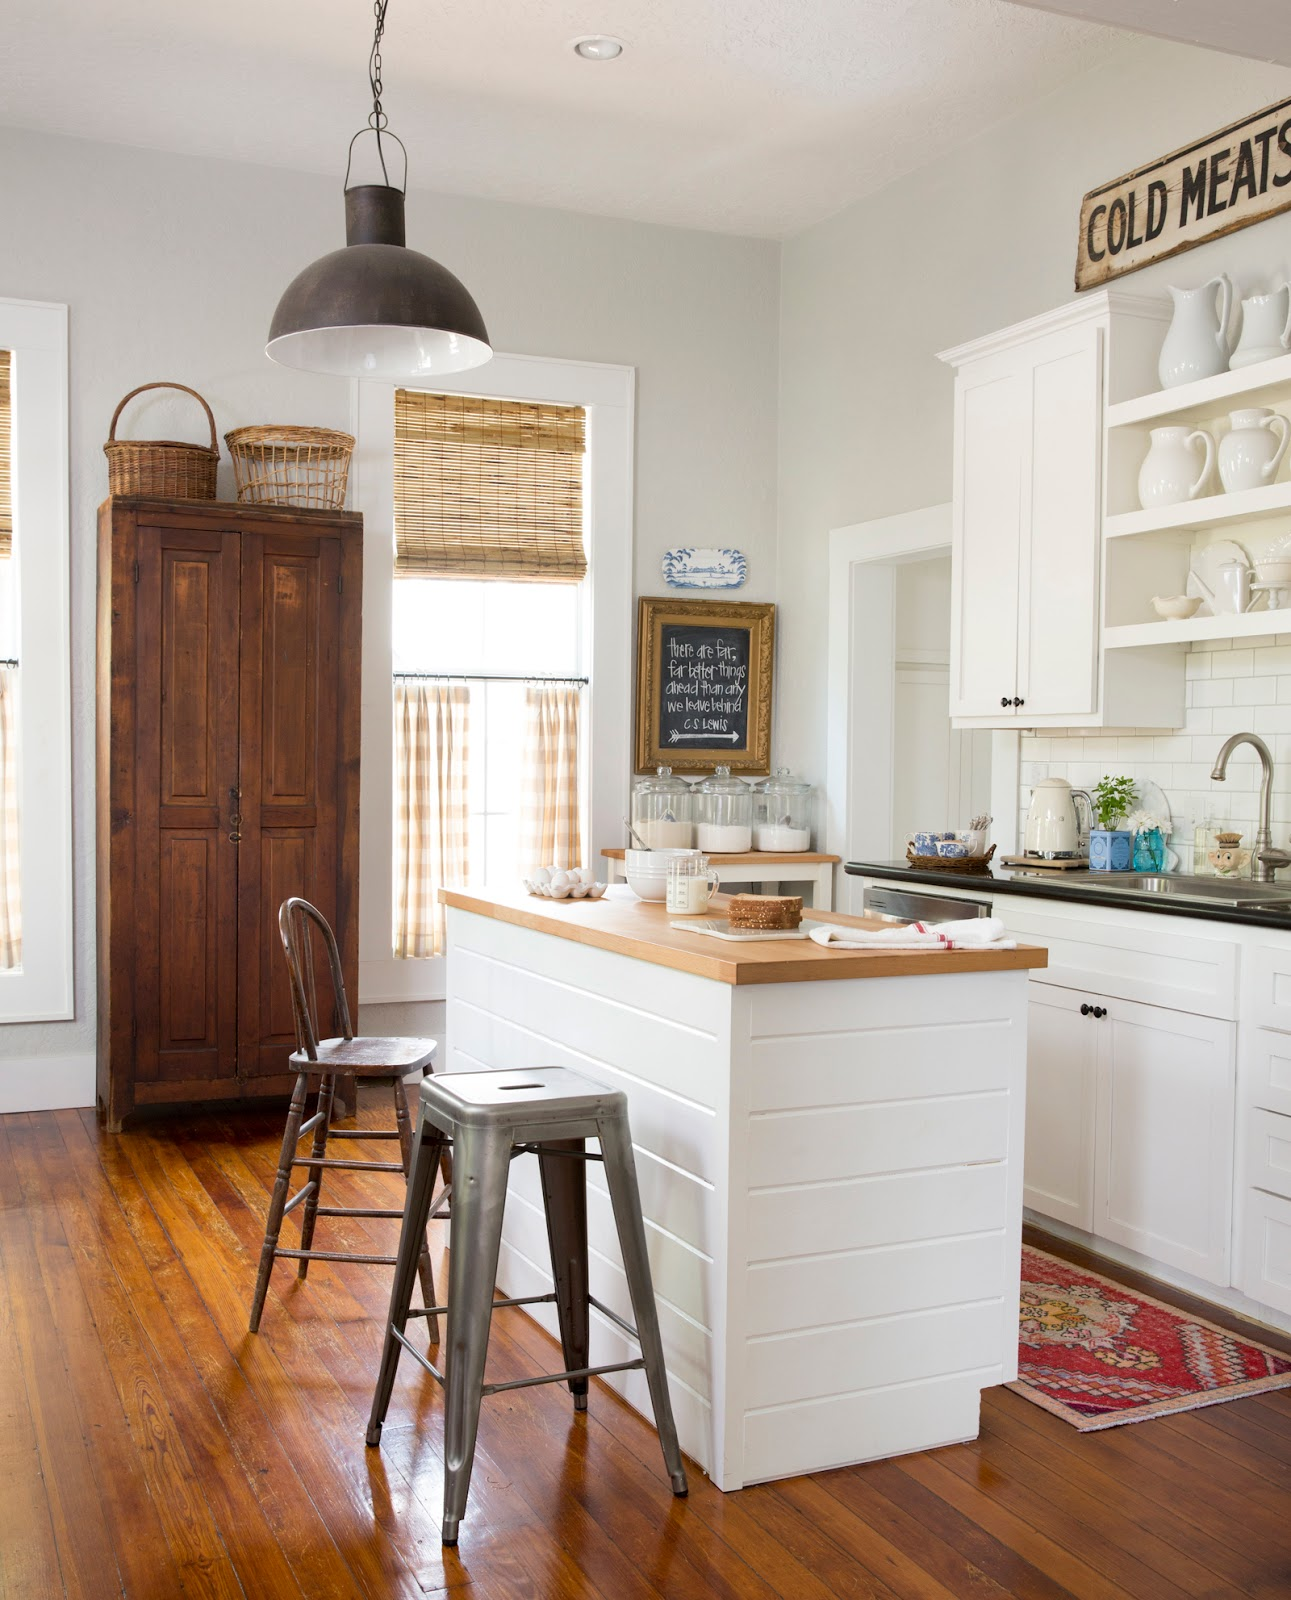 Charming cottage interiors with vintage decor by Holly Matthis on Hello Lovely Studio